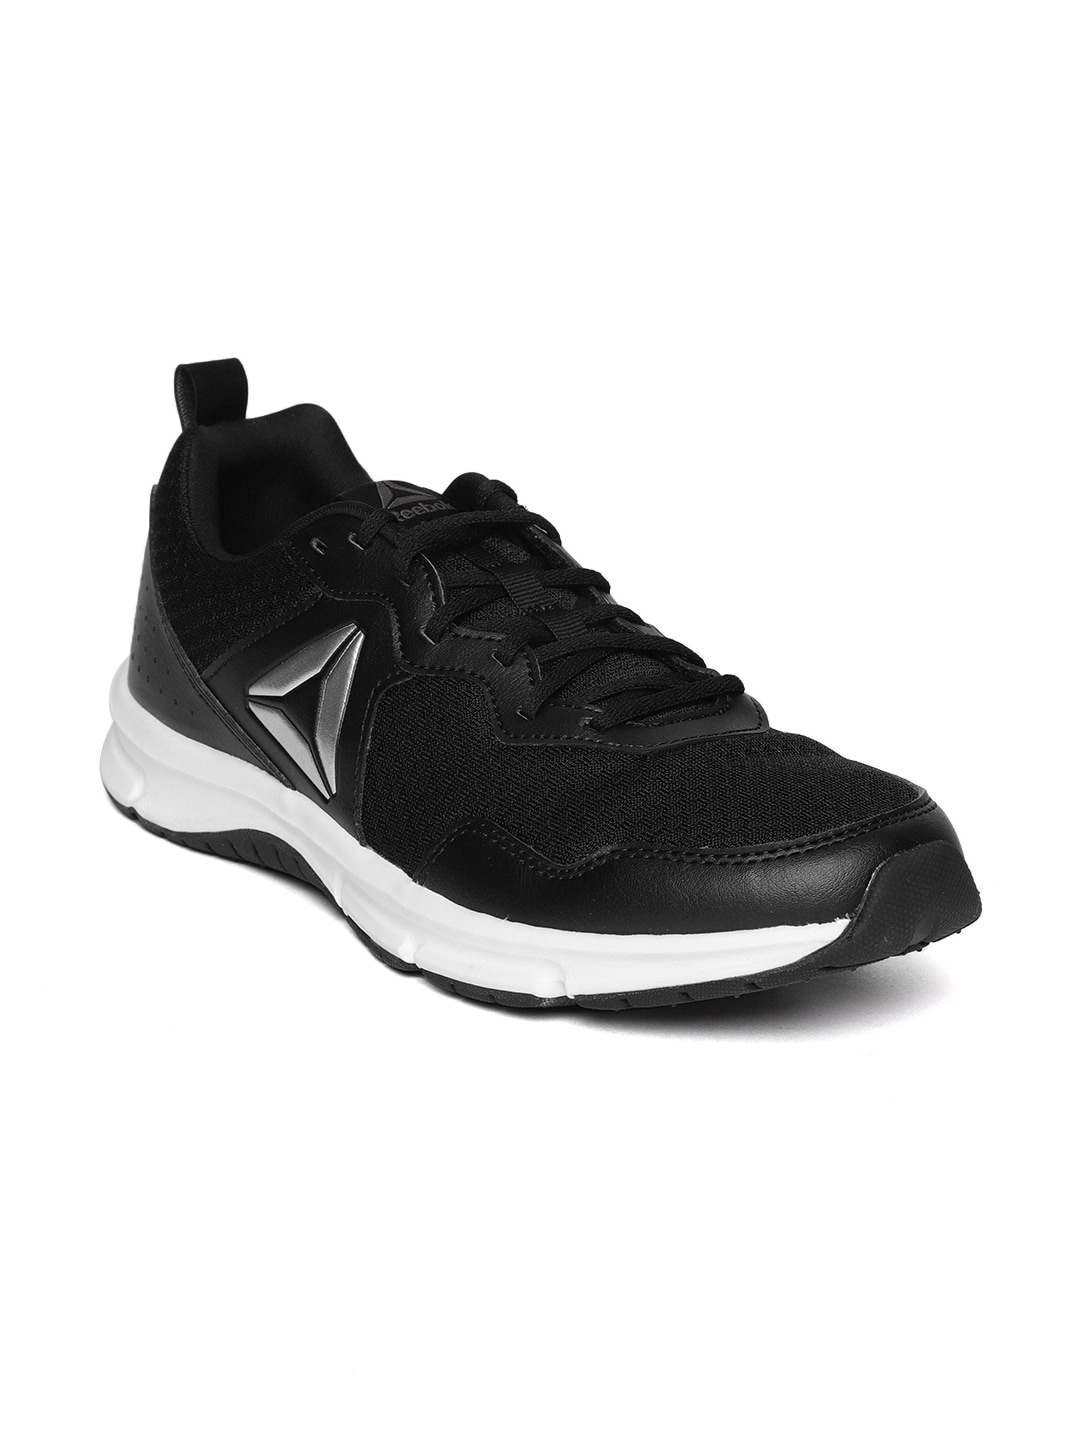 9cf14ccc495b7e Reebok Running Shoes